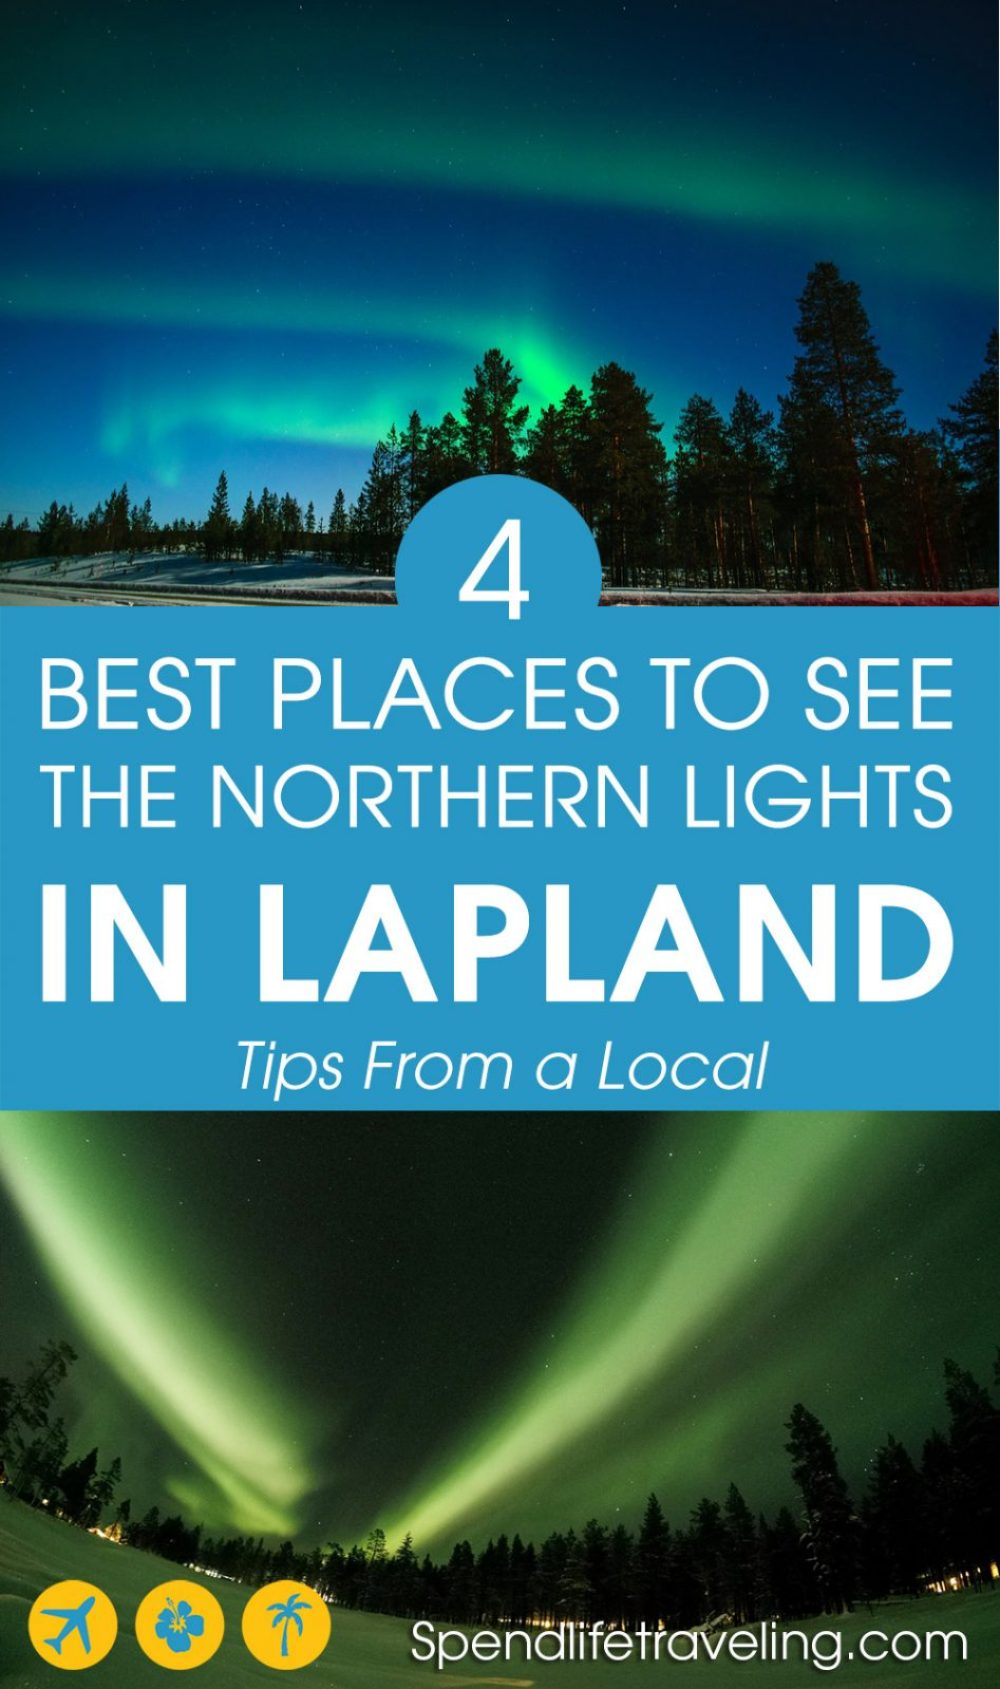 4 Of the best places to see the northern lights (aurora borealis) in Finnish Lapland. Plus extra tips for when and how best to see the northern lights. #northernlights #lapland #finland #auroraborealis #traveltip